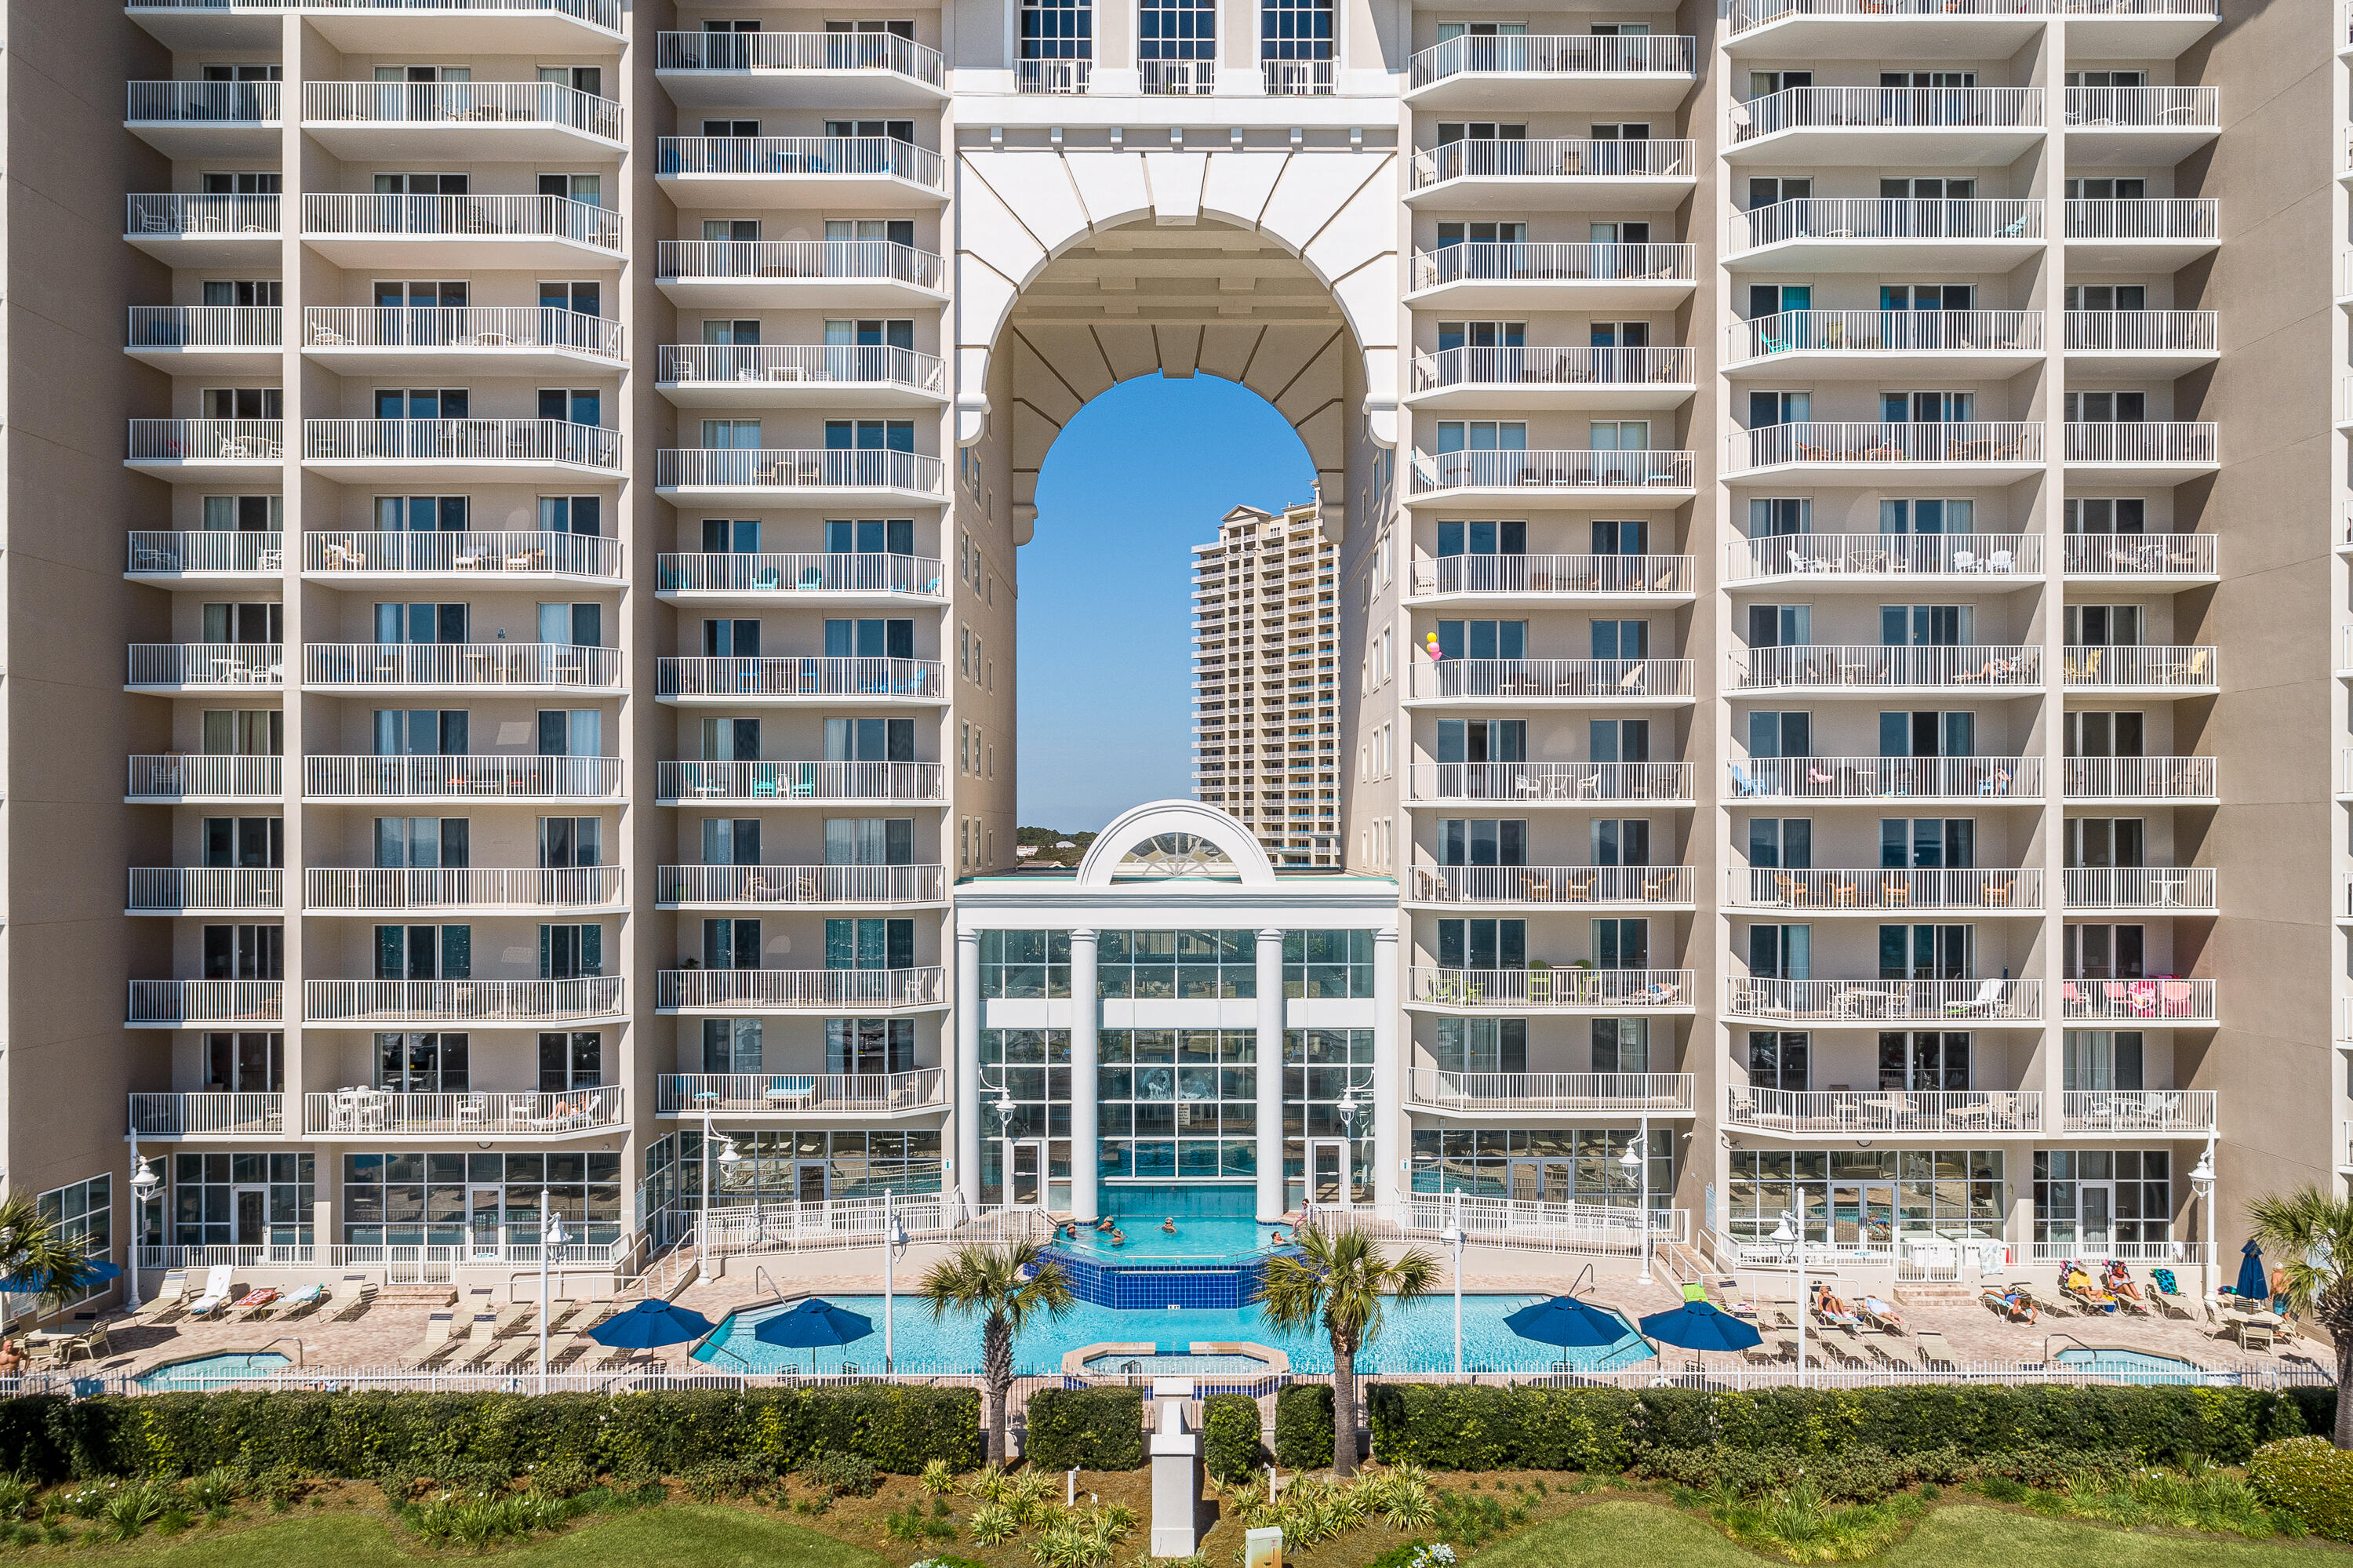 **$32K GROSS RENTAL REVENUE YTD through July 2021** Enjoy stunning views from this 2BR Deluxe at Majestic Sun. This uint is being offered fully-furnished and ready to rent (pending rentals can convey if the buyer wants to stay with the current rental manager). The is tile throughout the entire unit. Enjoy the indoor/outdoor pool, work out in the fitness center, chill in the hot tub or take a short stroll across to the Gulf of Mexico...all just steps away from your condo. The parking garage makes parking easy and Seascape offers golf, tennis, another pool and many on site restaurants. These units are rarely offered for sale...make it a point to see this one between rentals.